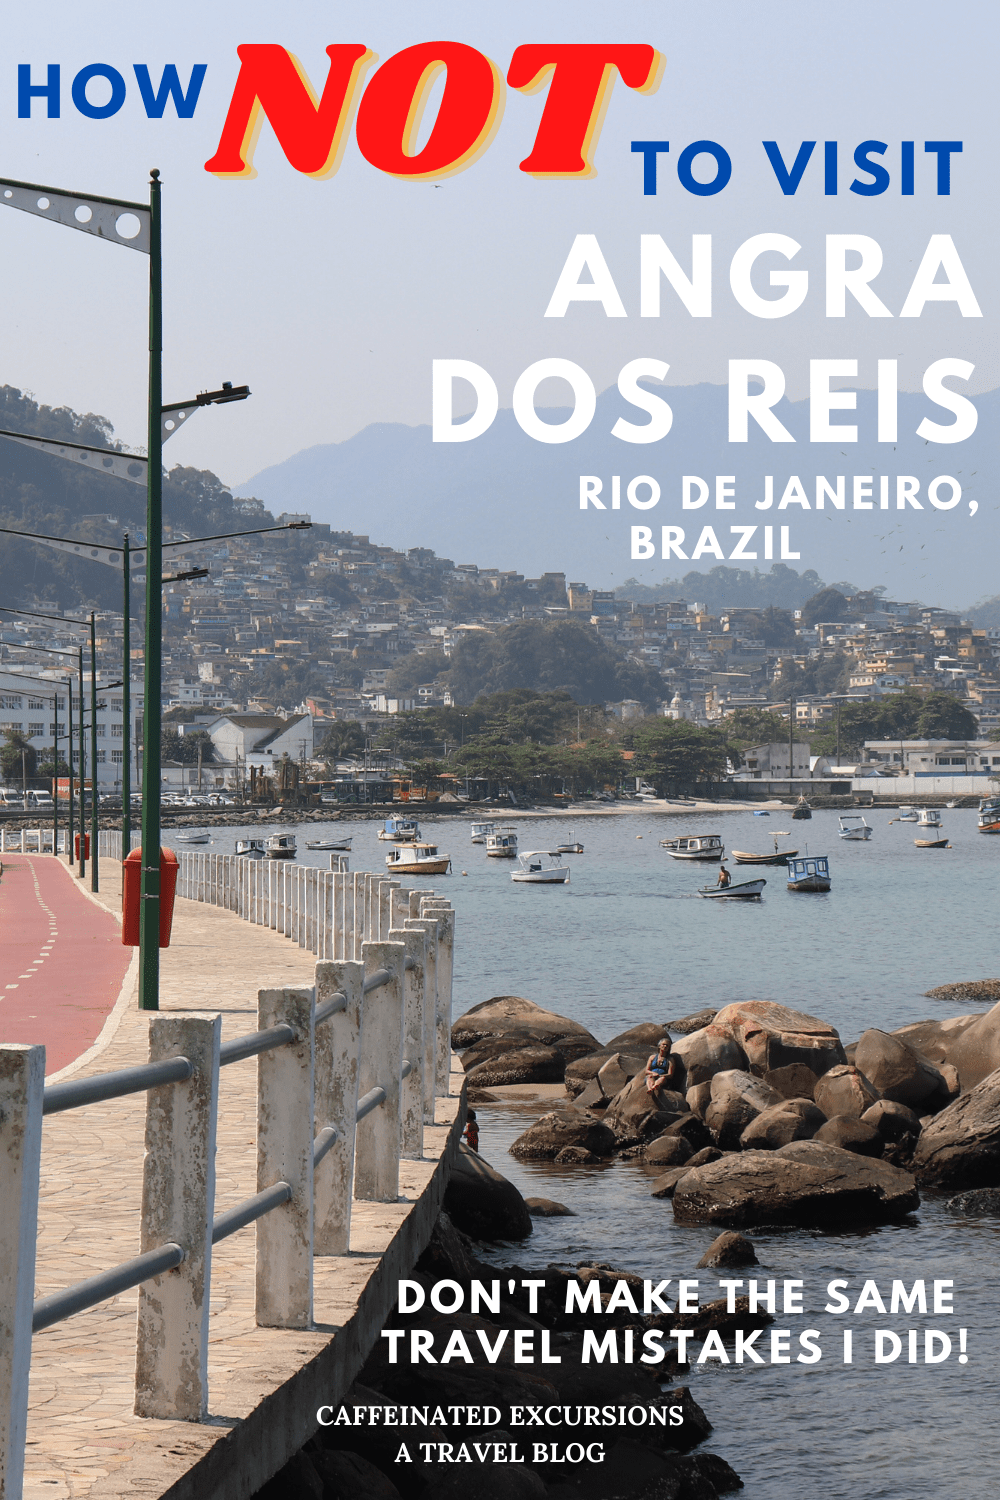 Check out this post to learn why I didn't love Angra dos Reis in the Brazilian state of Rio de Janeiro and how you can make sure your trip to the town is better than mine was! #angradosreis #angra #angrarj #angradosreisrj #angradosreisriodejaneiro #ilhagrande #ilhagranderj #ilhagranderiodejaneiro #angradosreisilhagrande #ilhagrandeangradosreis #riodejaneiro #rj #estadodoriodejaneiro #riodejaneirostate #visitbrazil #braziltravel #travelbrazil #travelblog #travelblogger #caffeinatedexcursions